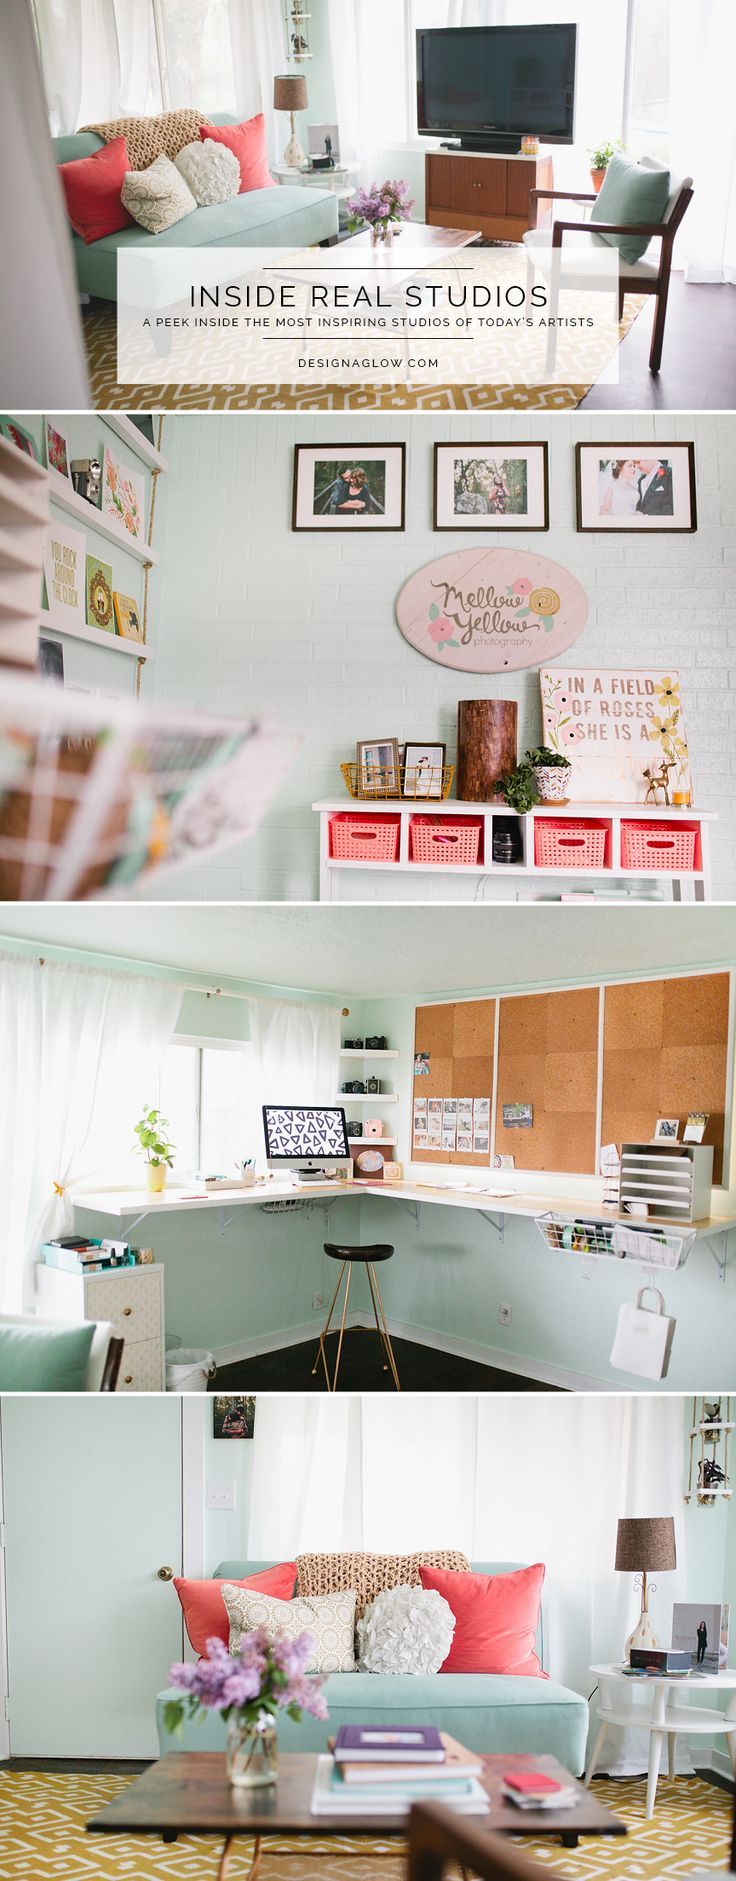 Inside the inspiring Photography Studio of Mellow Yellow Photography.